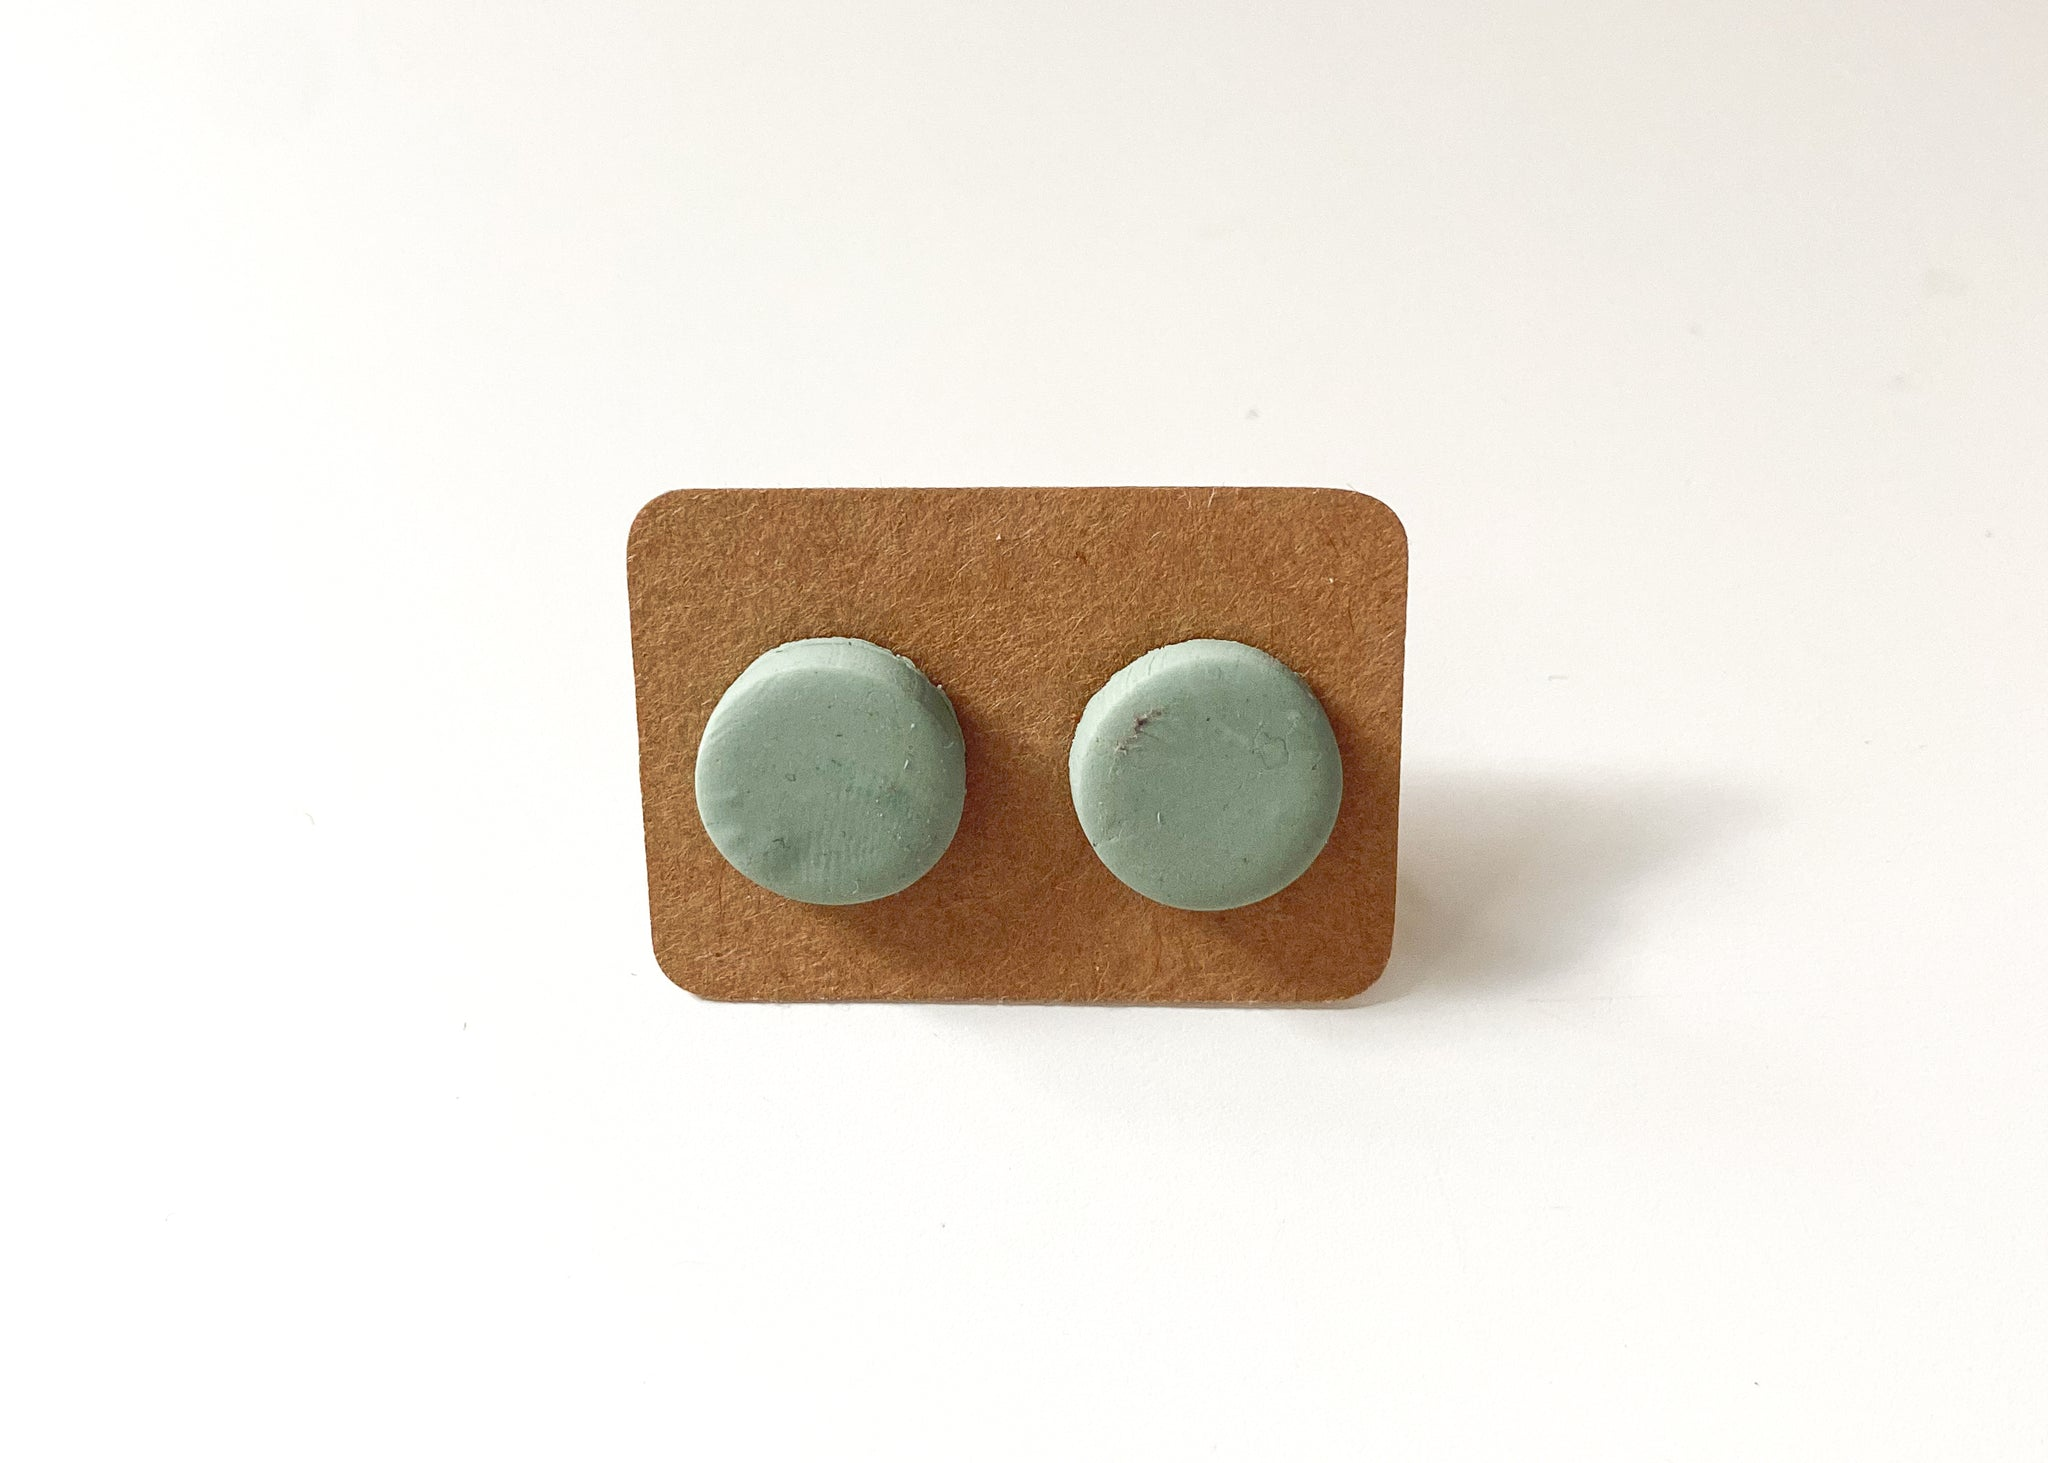 Sage Green Round Stud Earrings - Clay Jewelry - Polymer Clay Earring - Unique Earrings - Boho Earrings - Handmade Earrings - Stud Earrings